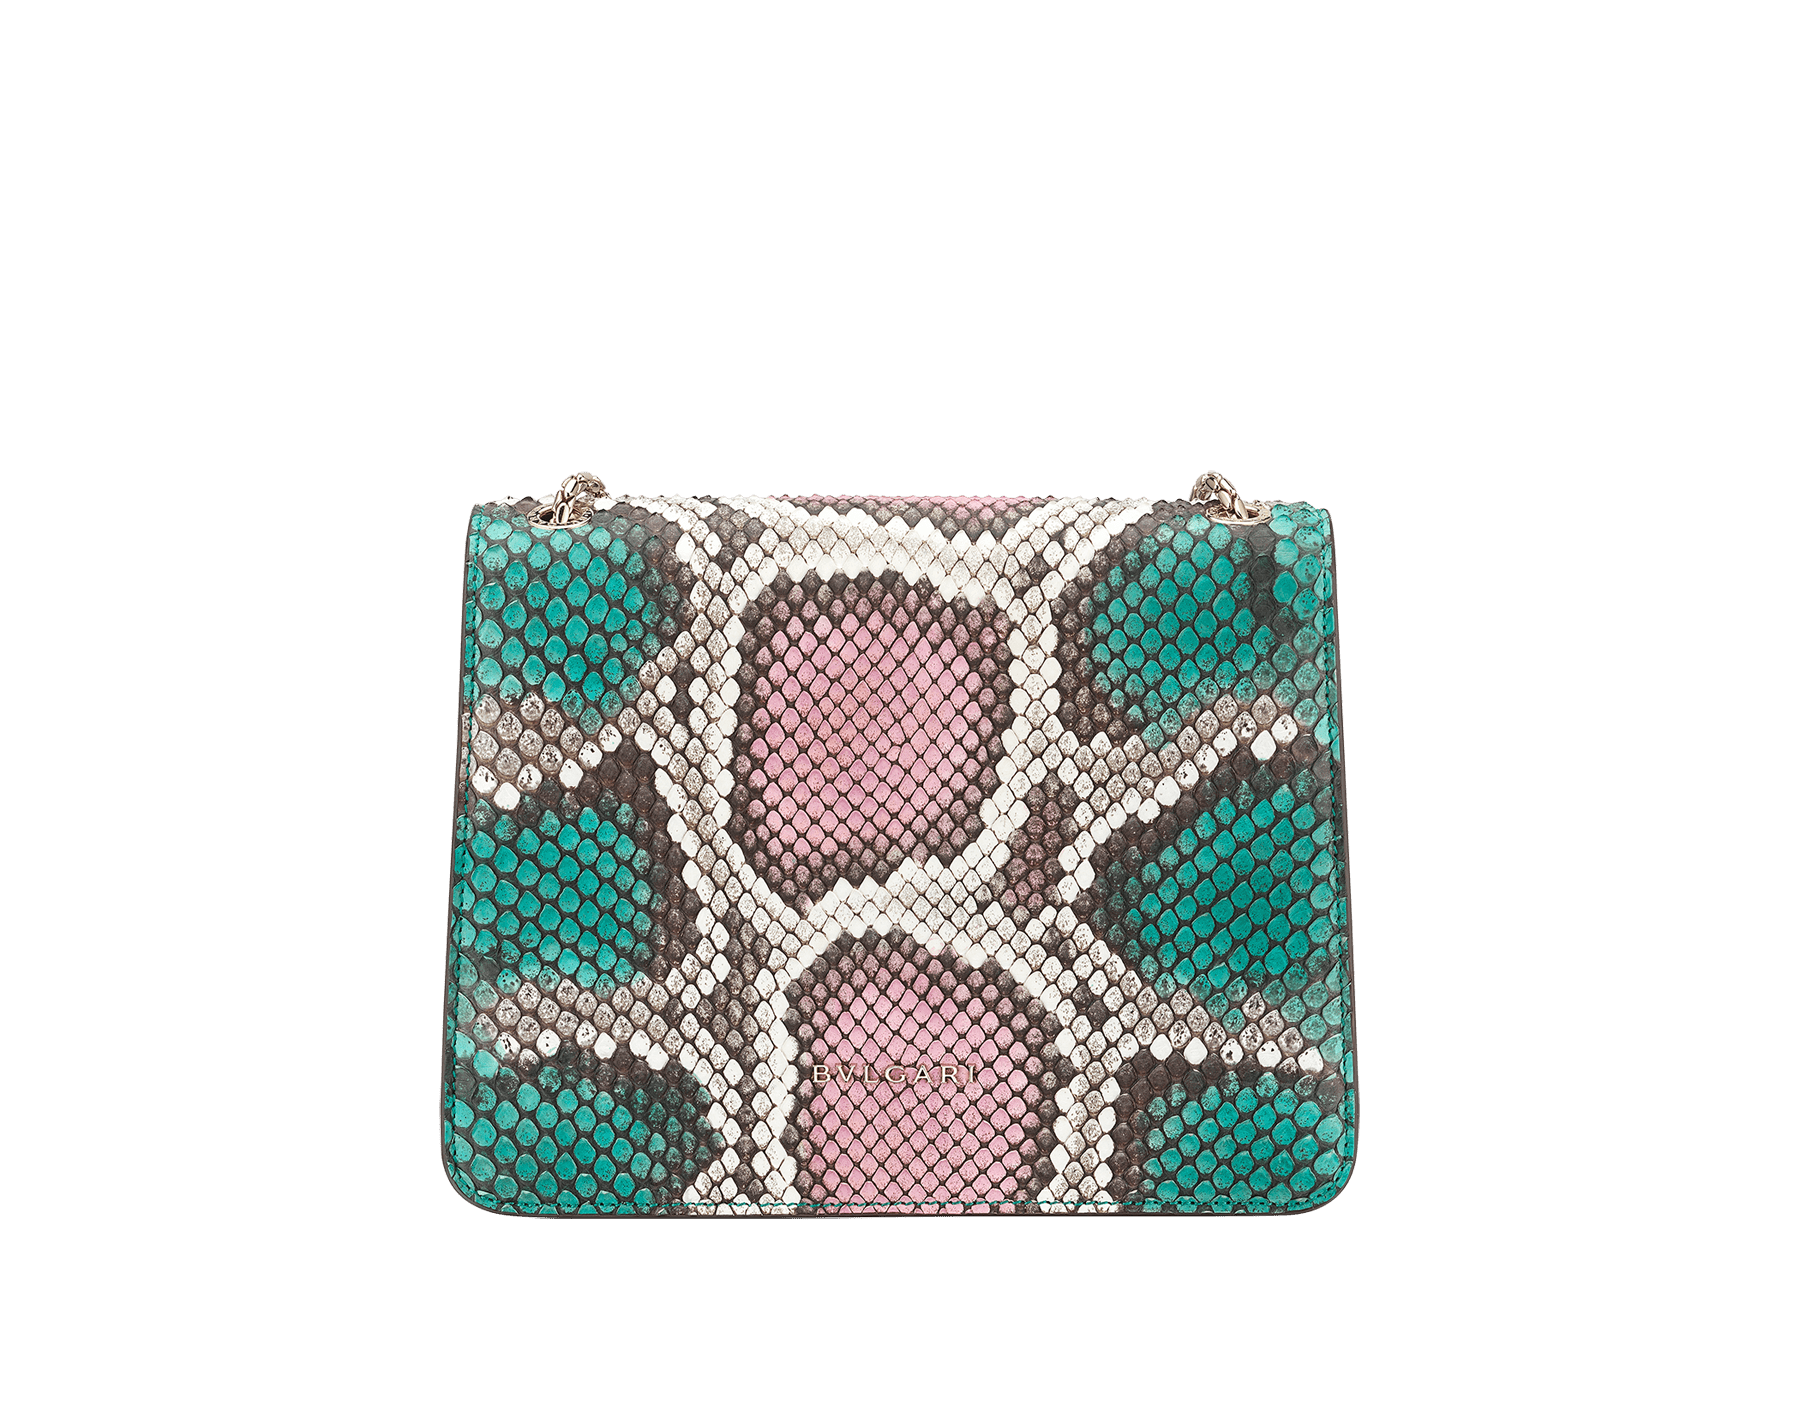 """Serpenti Forever"" crossbody bag in arctic jade Psiche python skin. Iconic snakehead closure in light gold plated brass enriched with black and arctic jade enamel and black onyx eyes. 288938 image 3"